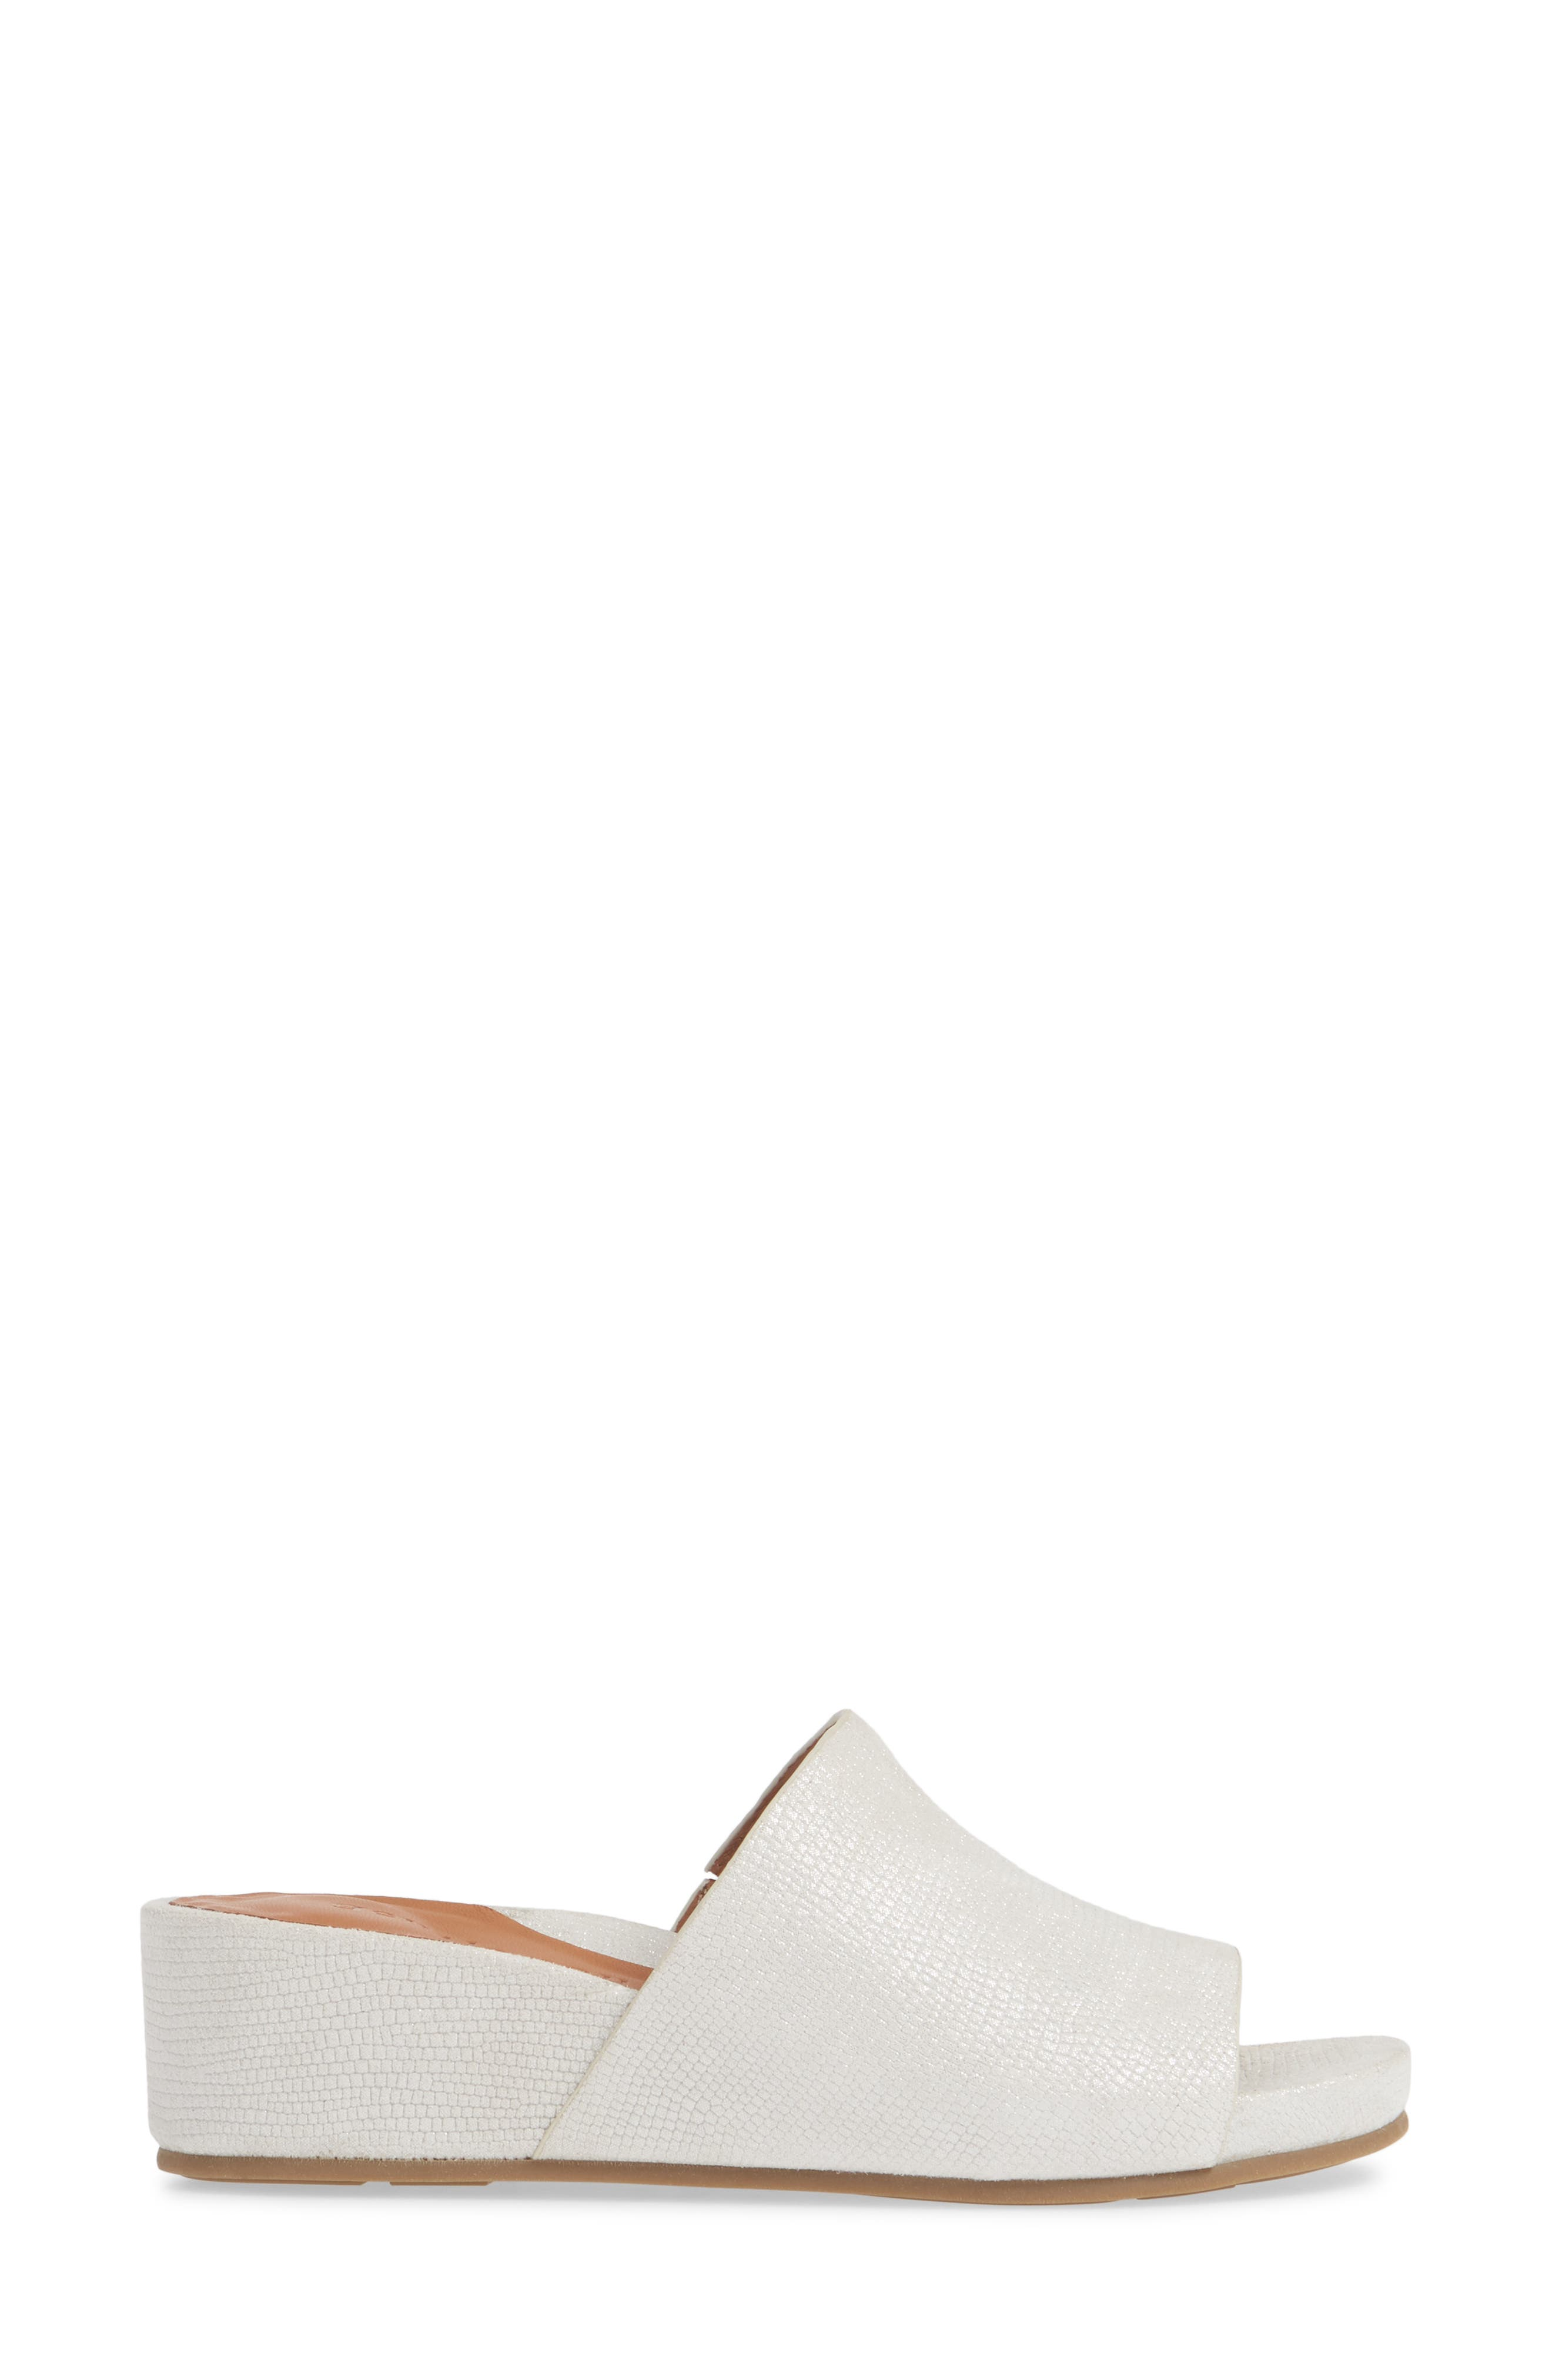 GENTLE SOULS BY KENNETH COLE, Gisele Wedge Slide Sandal, Alternate thumbnail 3, color, WHITE EMBOSSED LEATHER